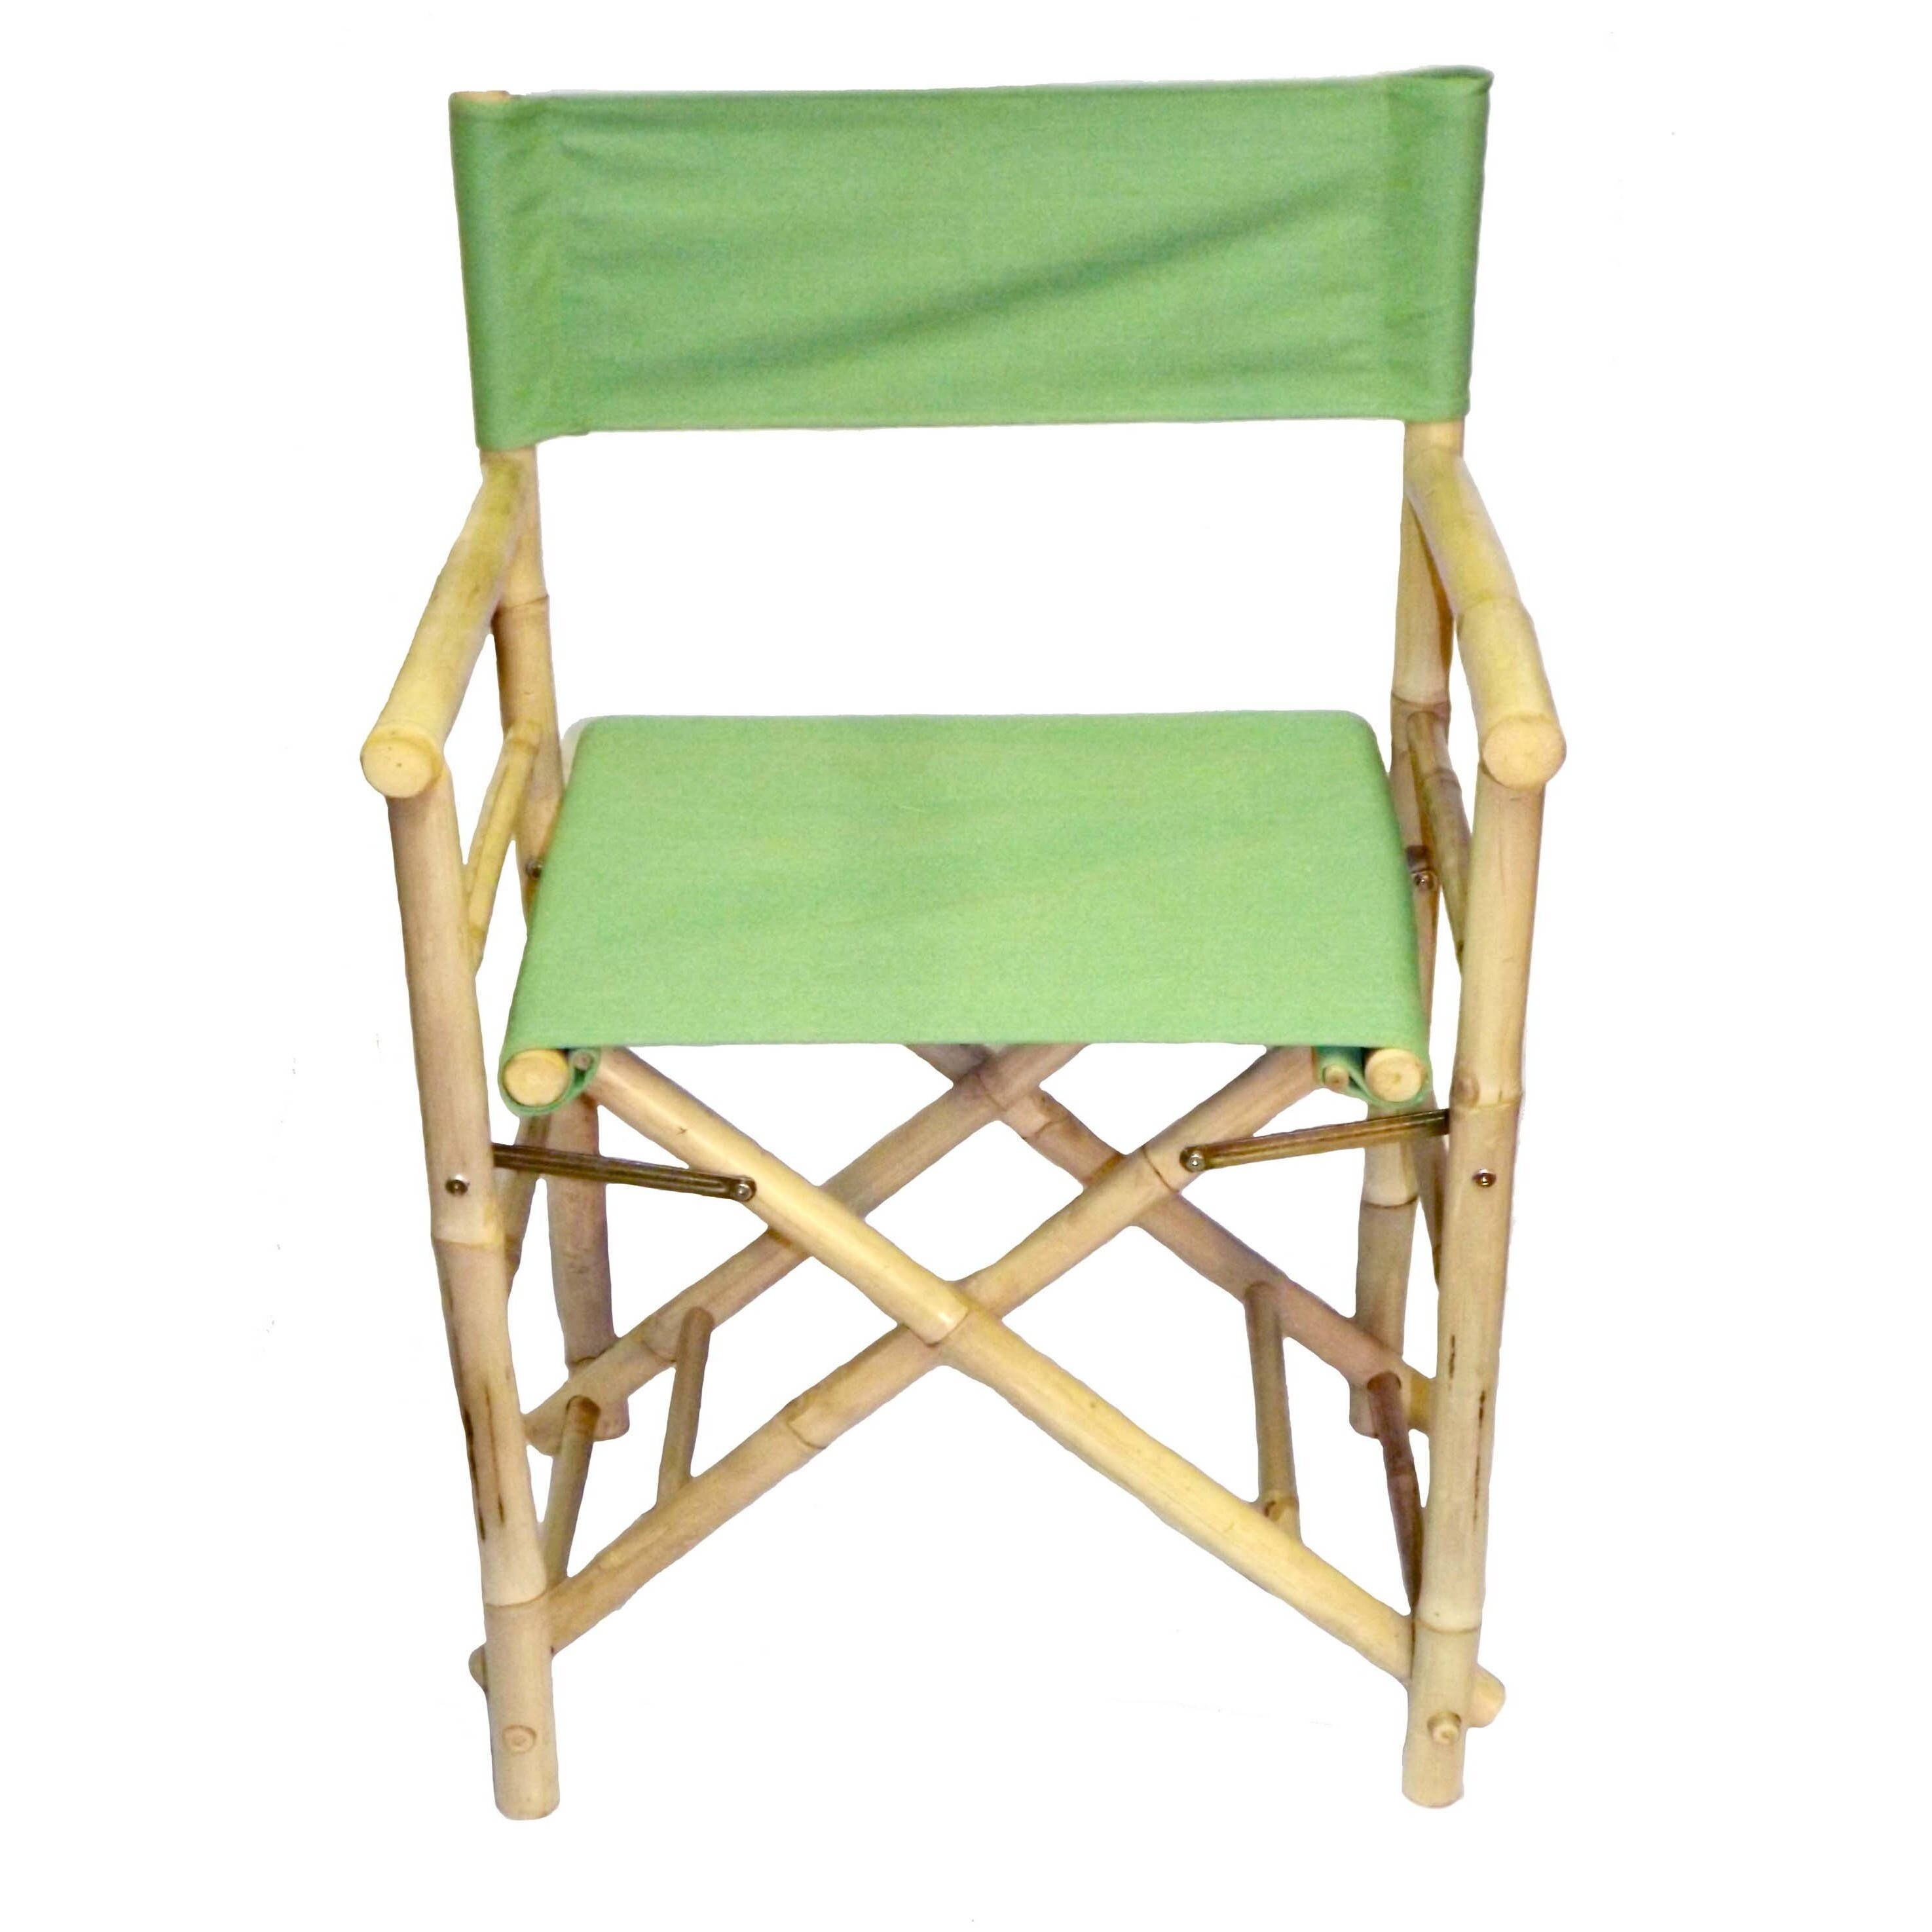 bamboo directors chairs designer for living room shop handmade set of 2 director s vietnam free shipping today overstock com 11897323